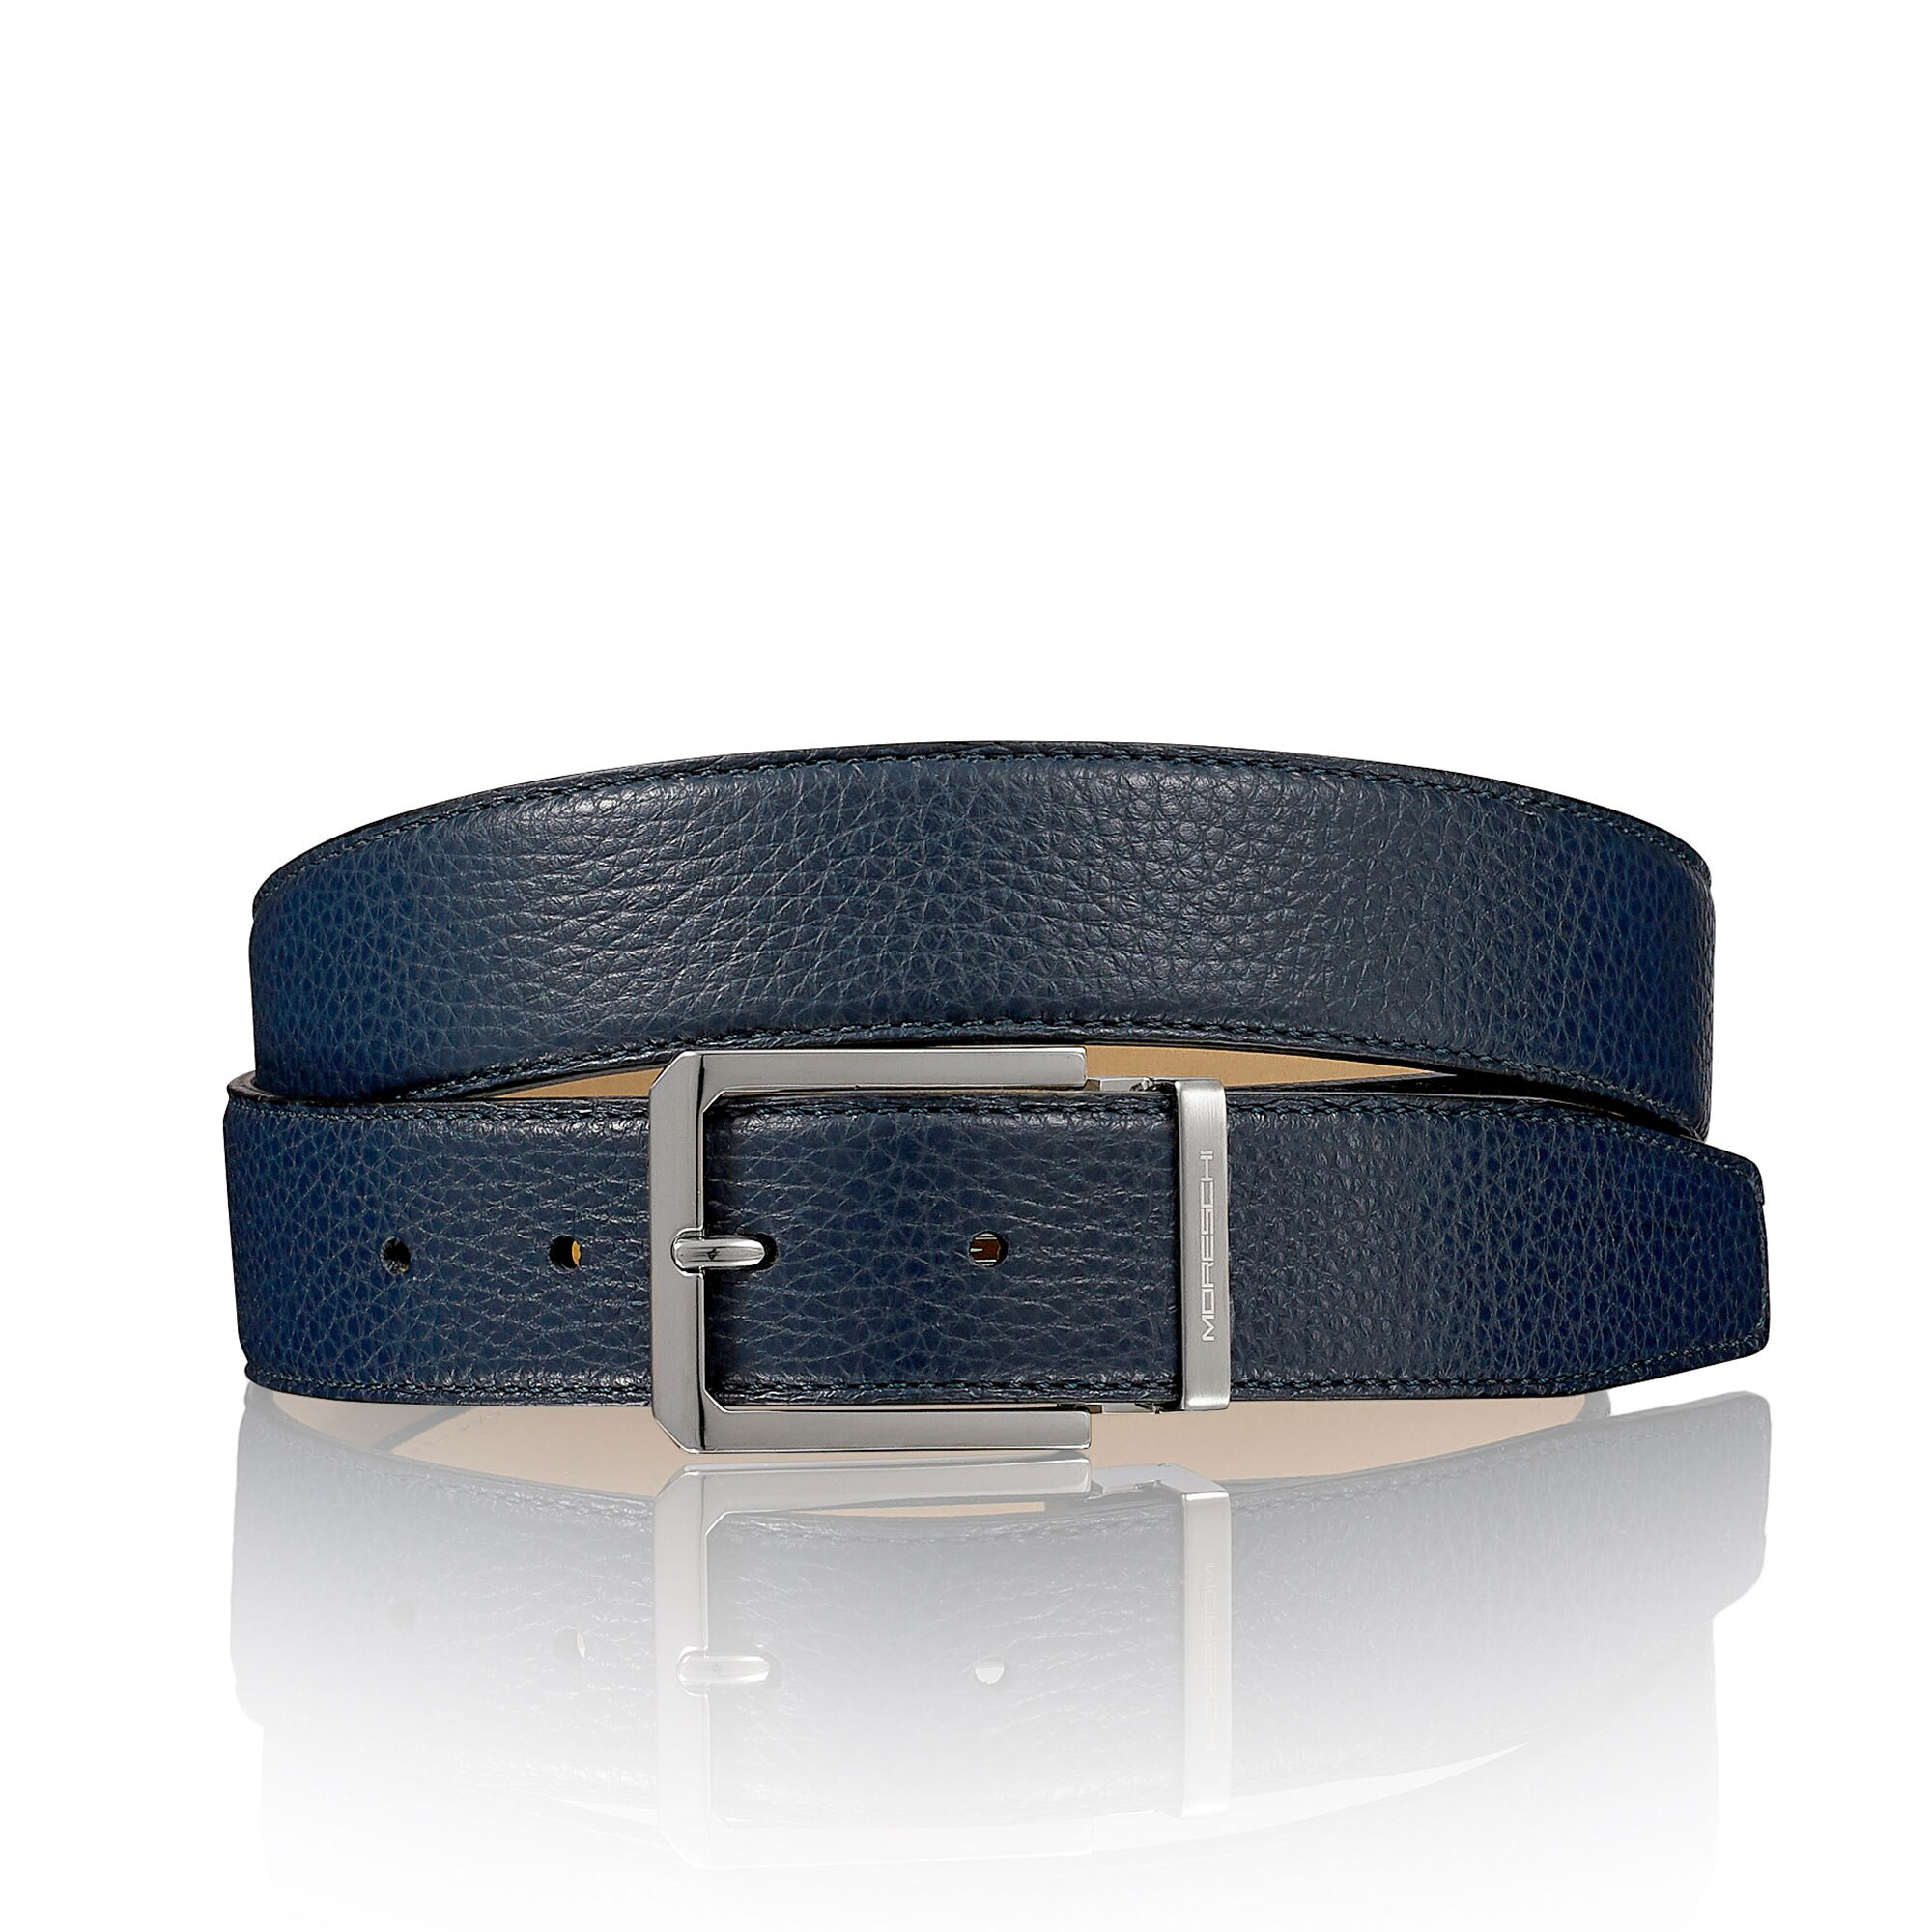 Russell and Bromley ULTIMATE Leather Belt